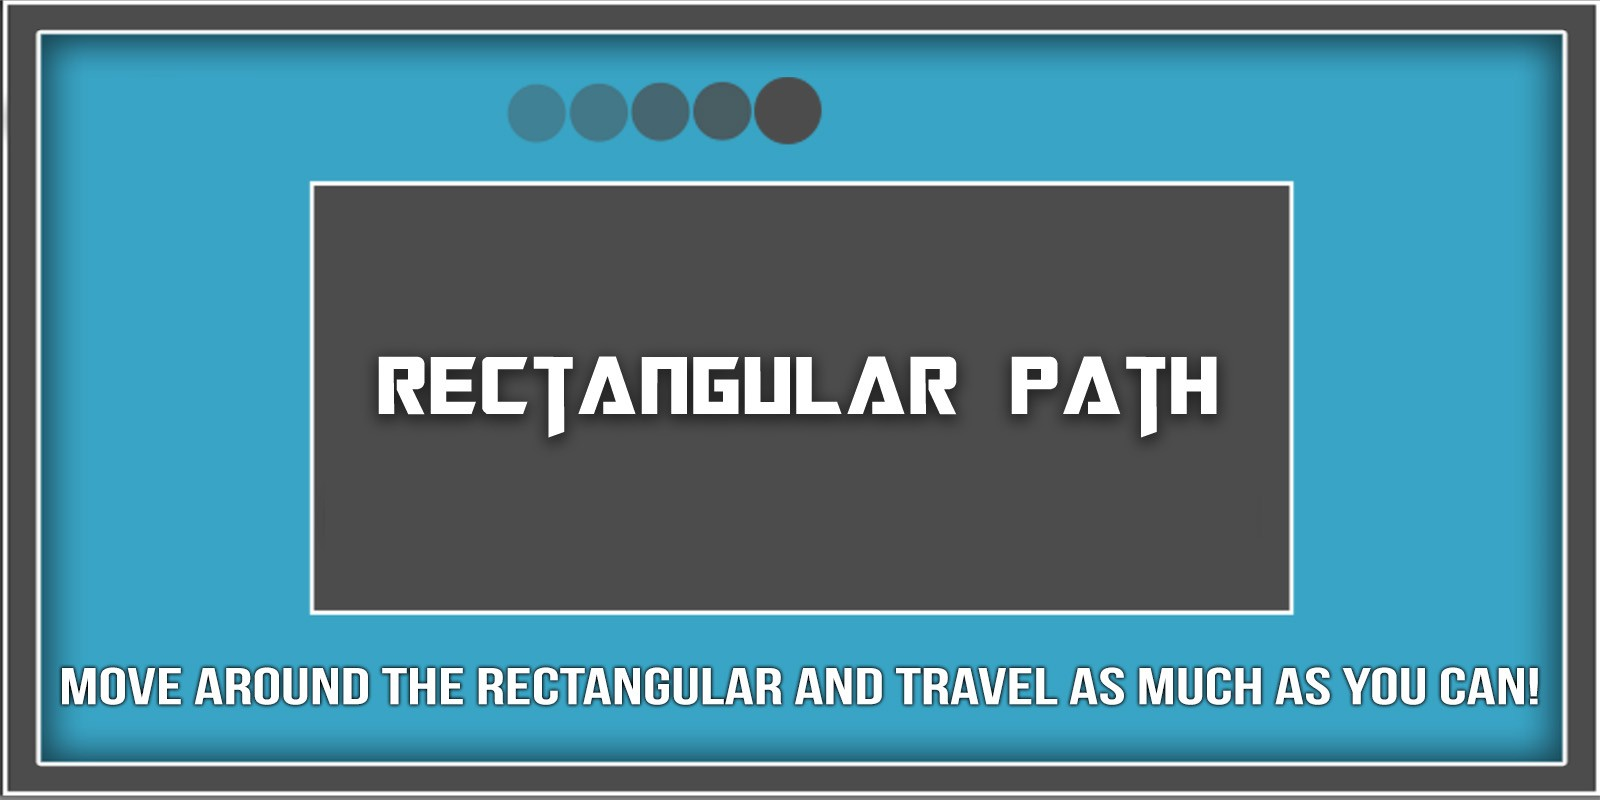 Rectangular Path - Unity Game Source Code